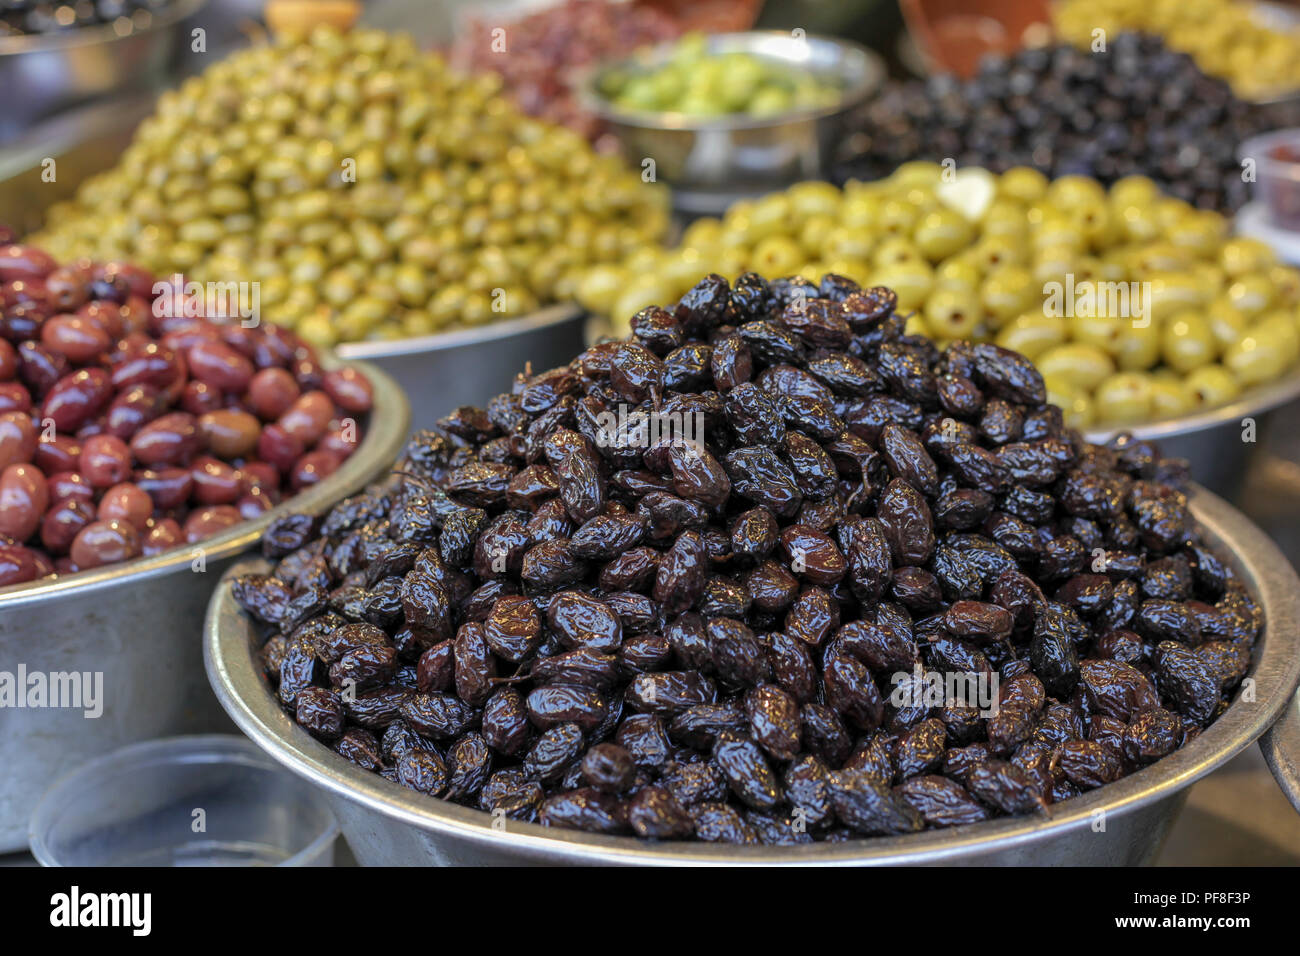 Olives of different types and colours in a market stall Photographed in Tel Aviv, Israel Stock Photo